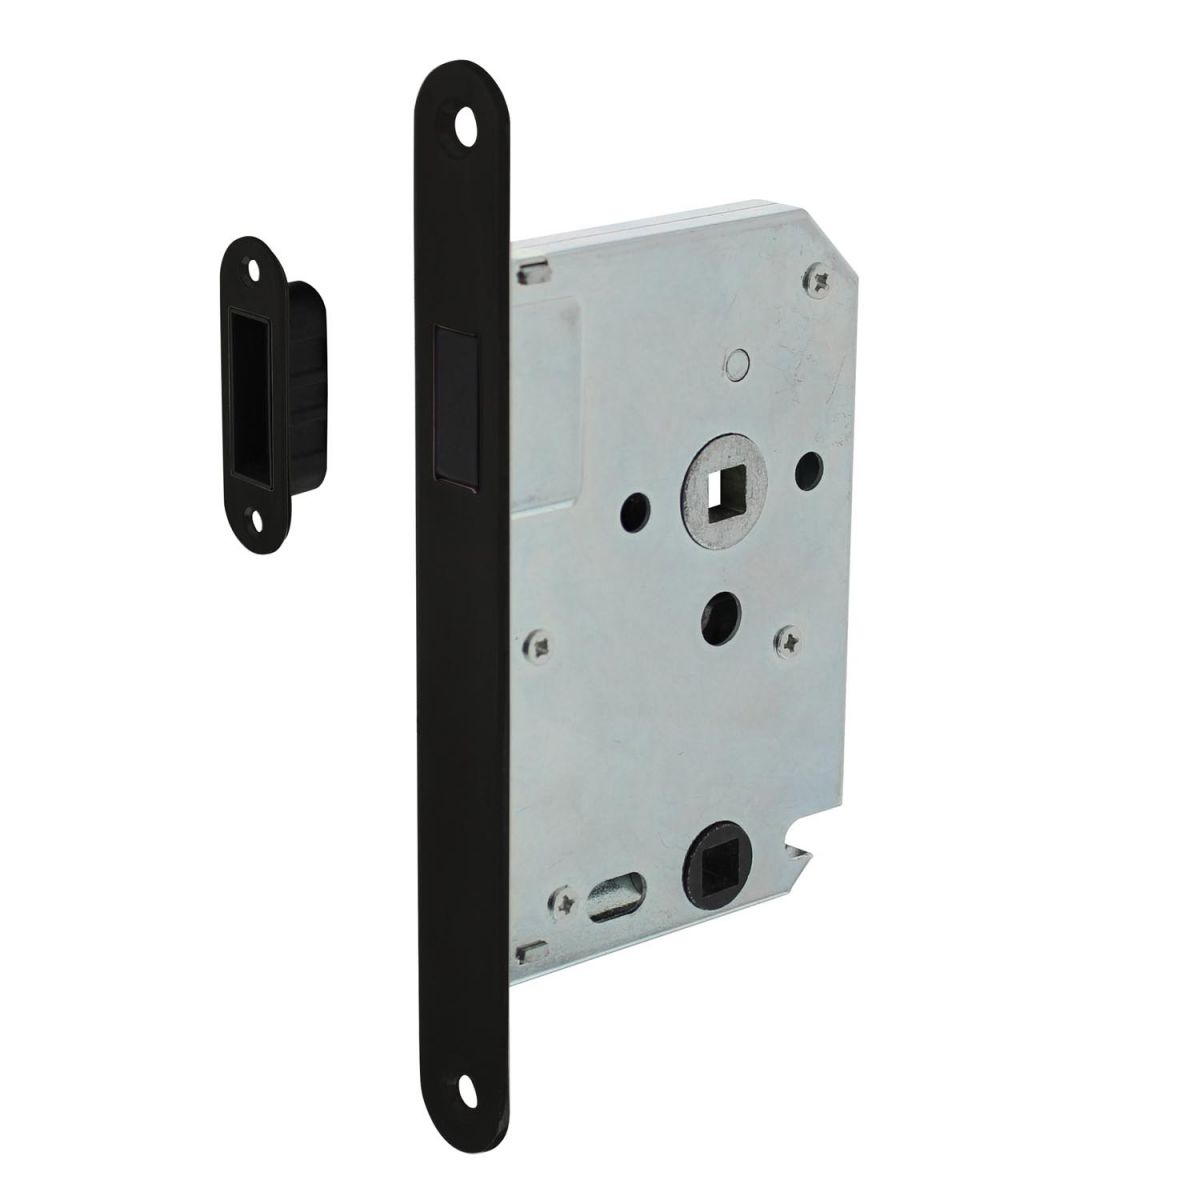 magnet toilet lock with black front plate